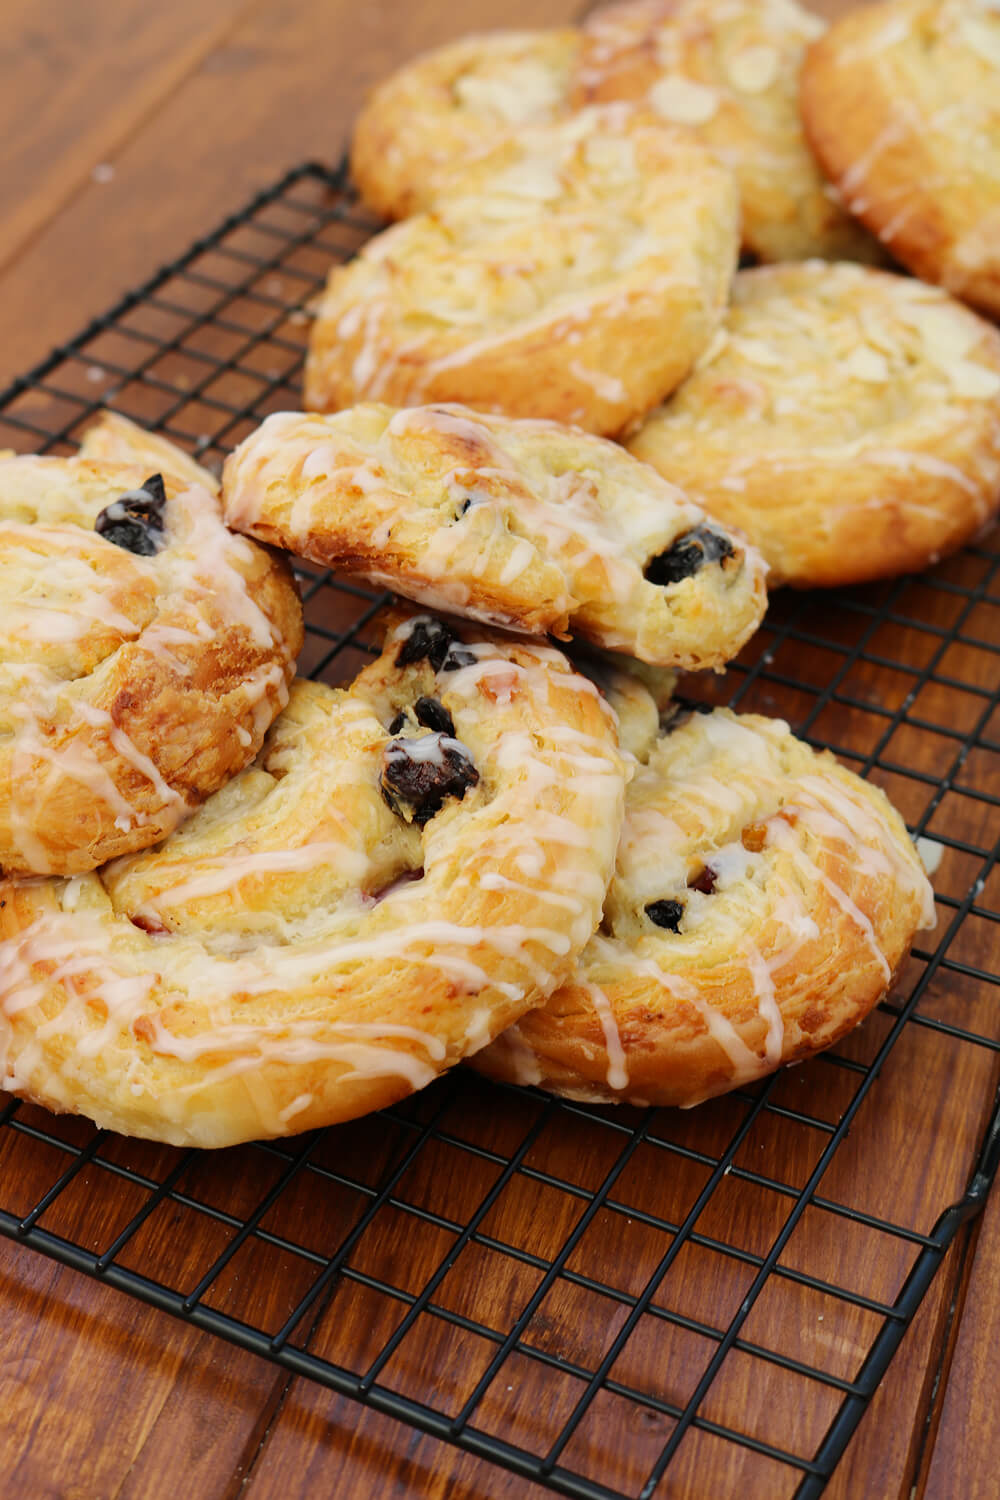 Berry and Almond Danish Pastries | Bake Off Bake Along | Take Some Whisks